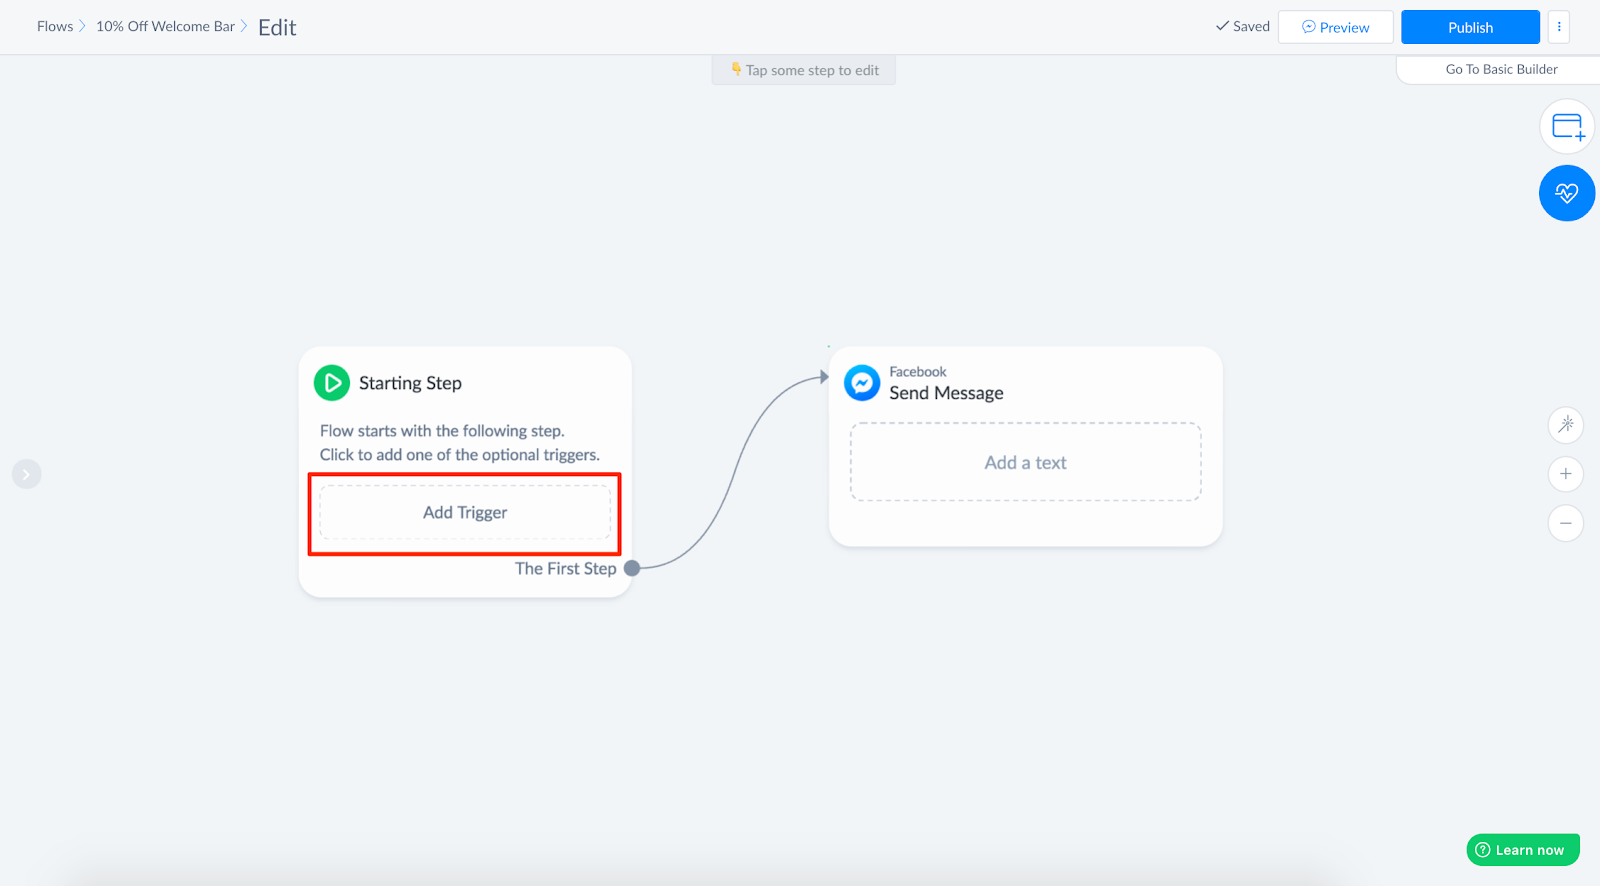 Selecting Trigger to start flow in ManyChat Flow Builder